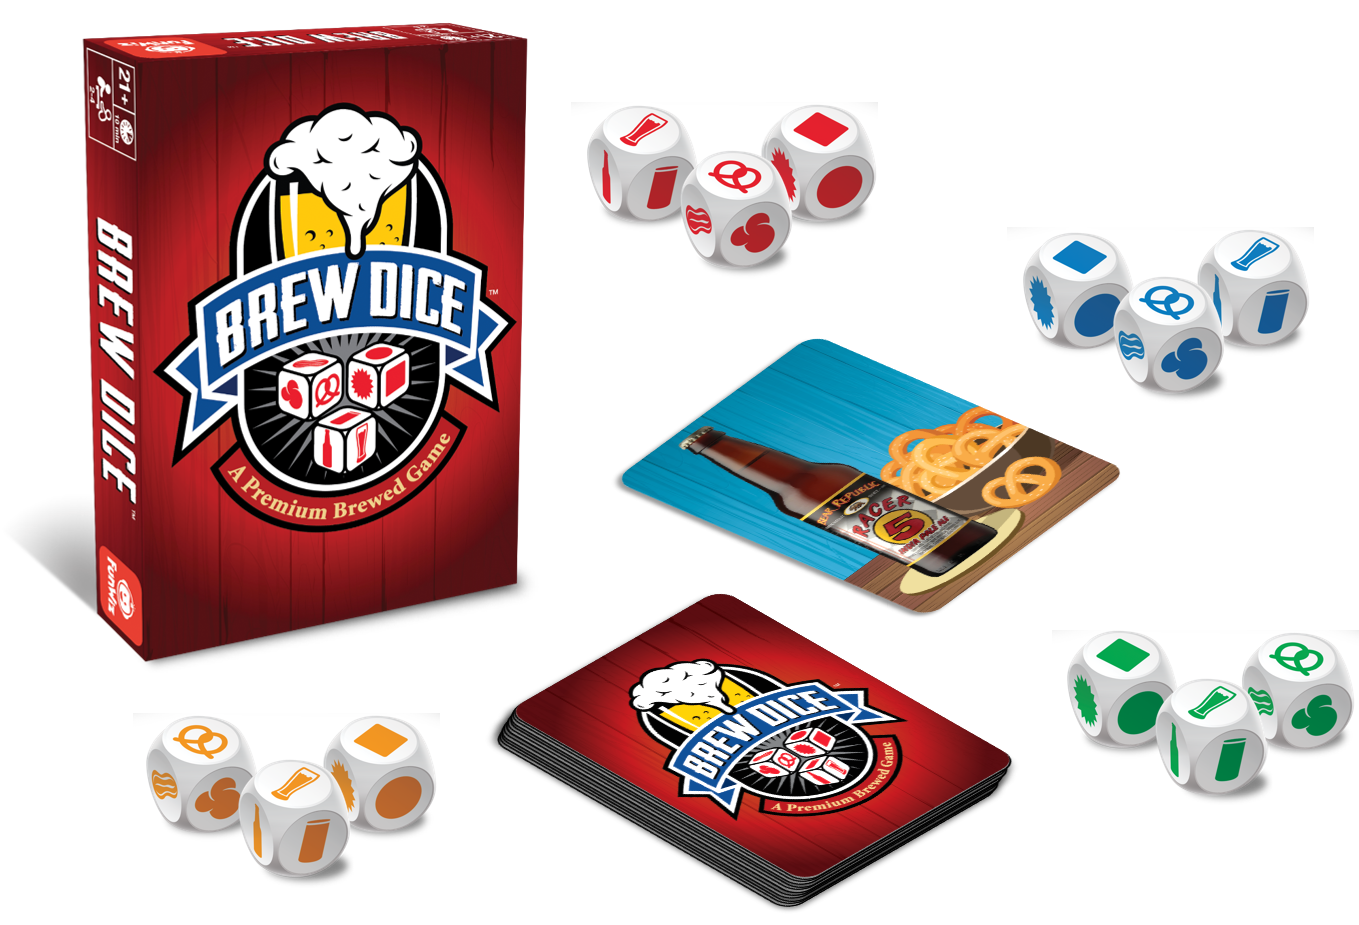 brew dice layout.png